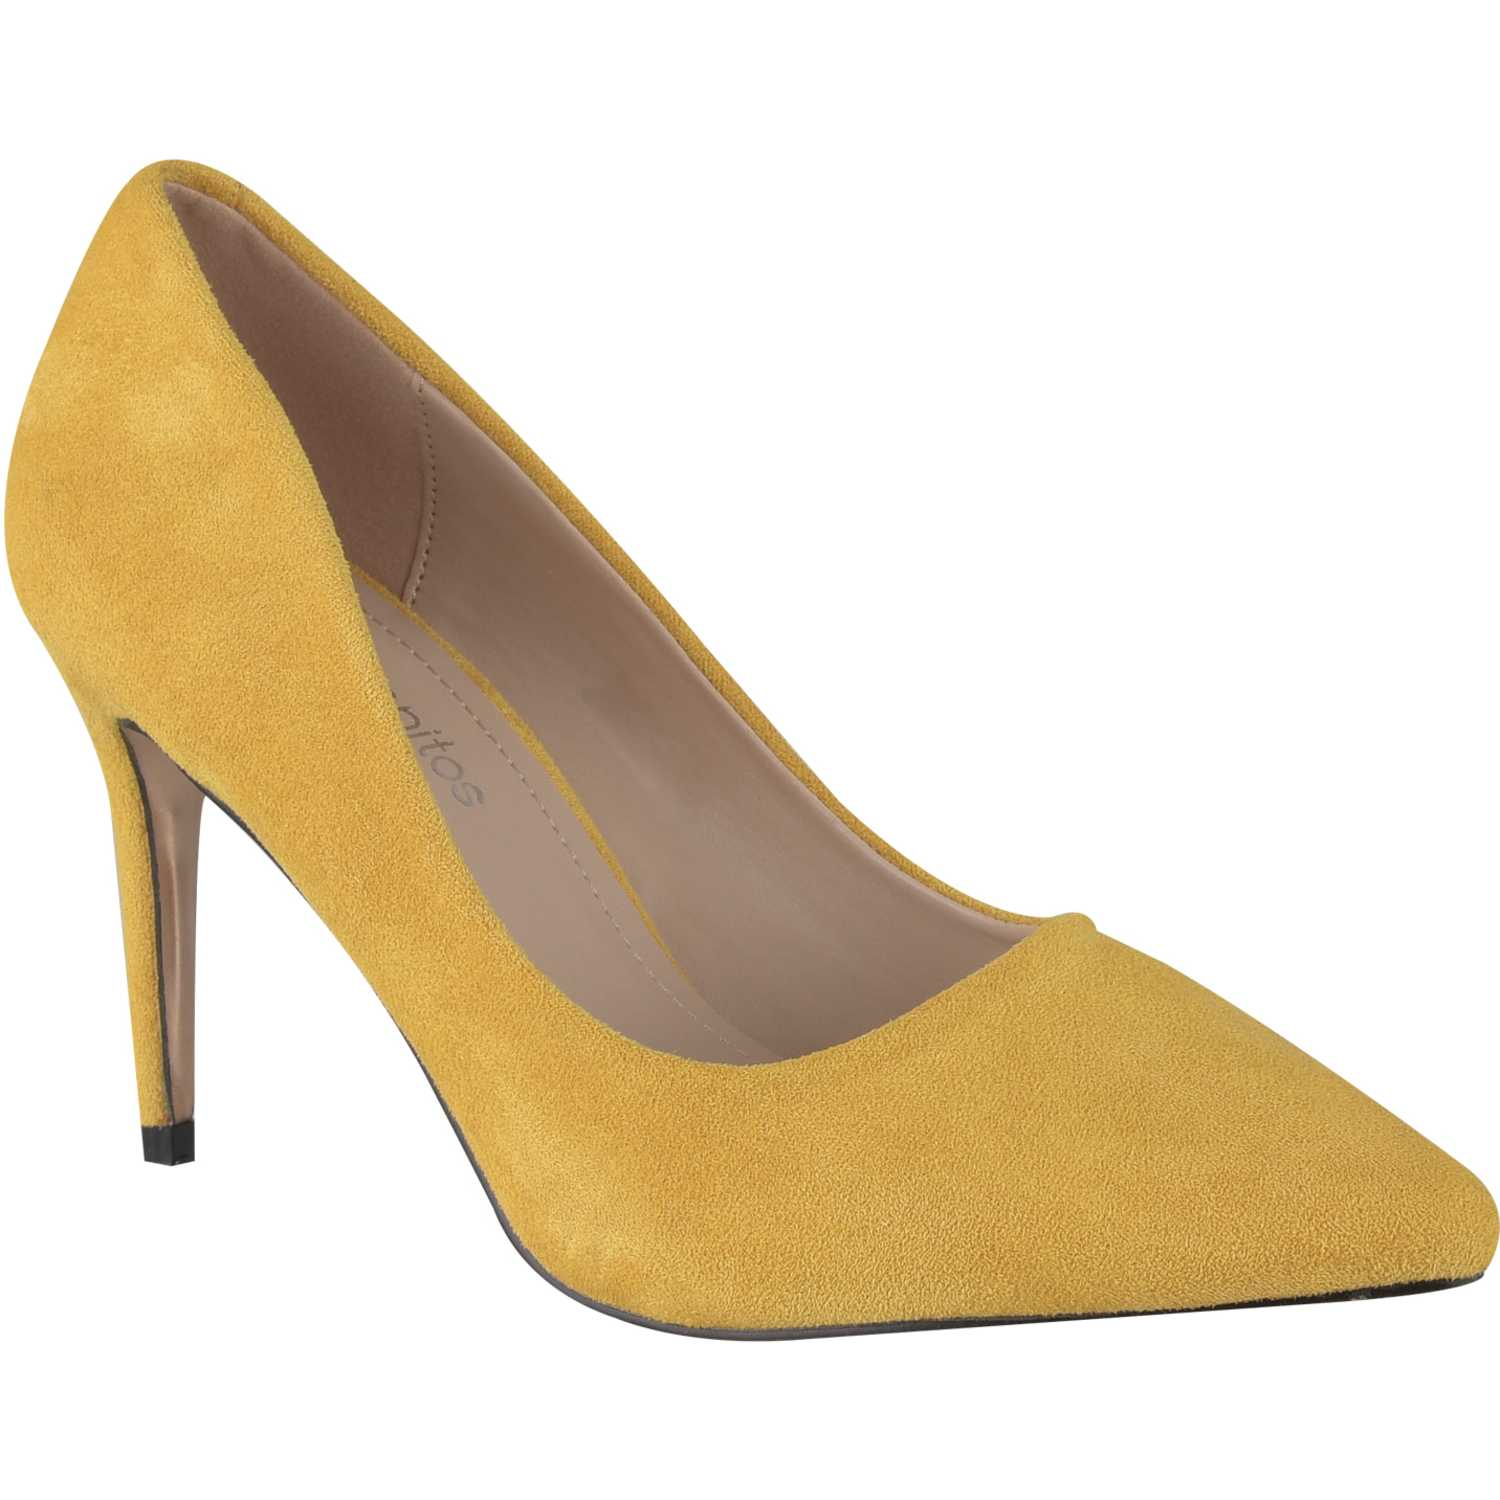 Platanitos cv 33 Amarillo Estiletos y Pumps